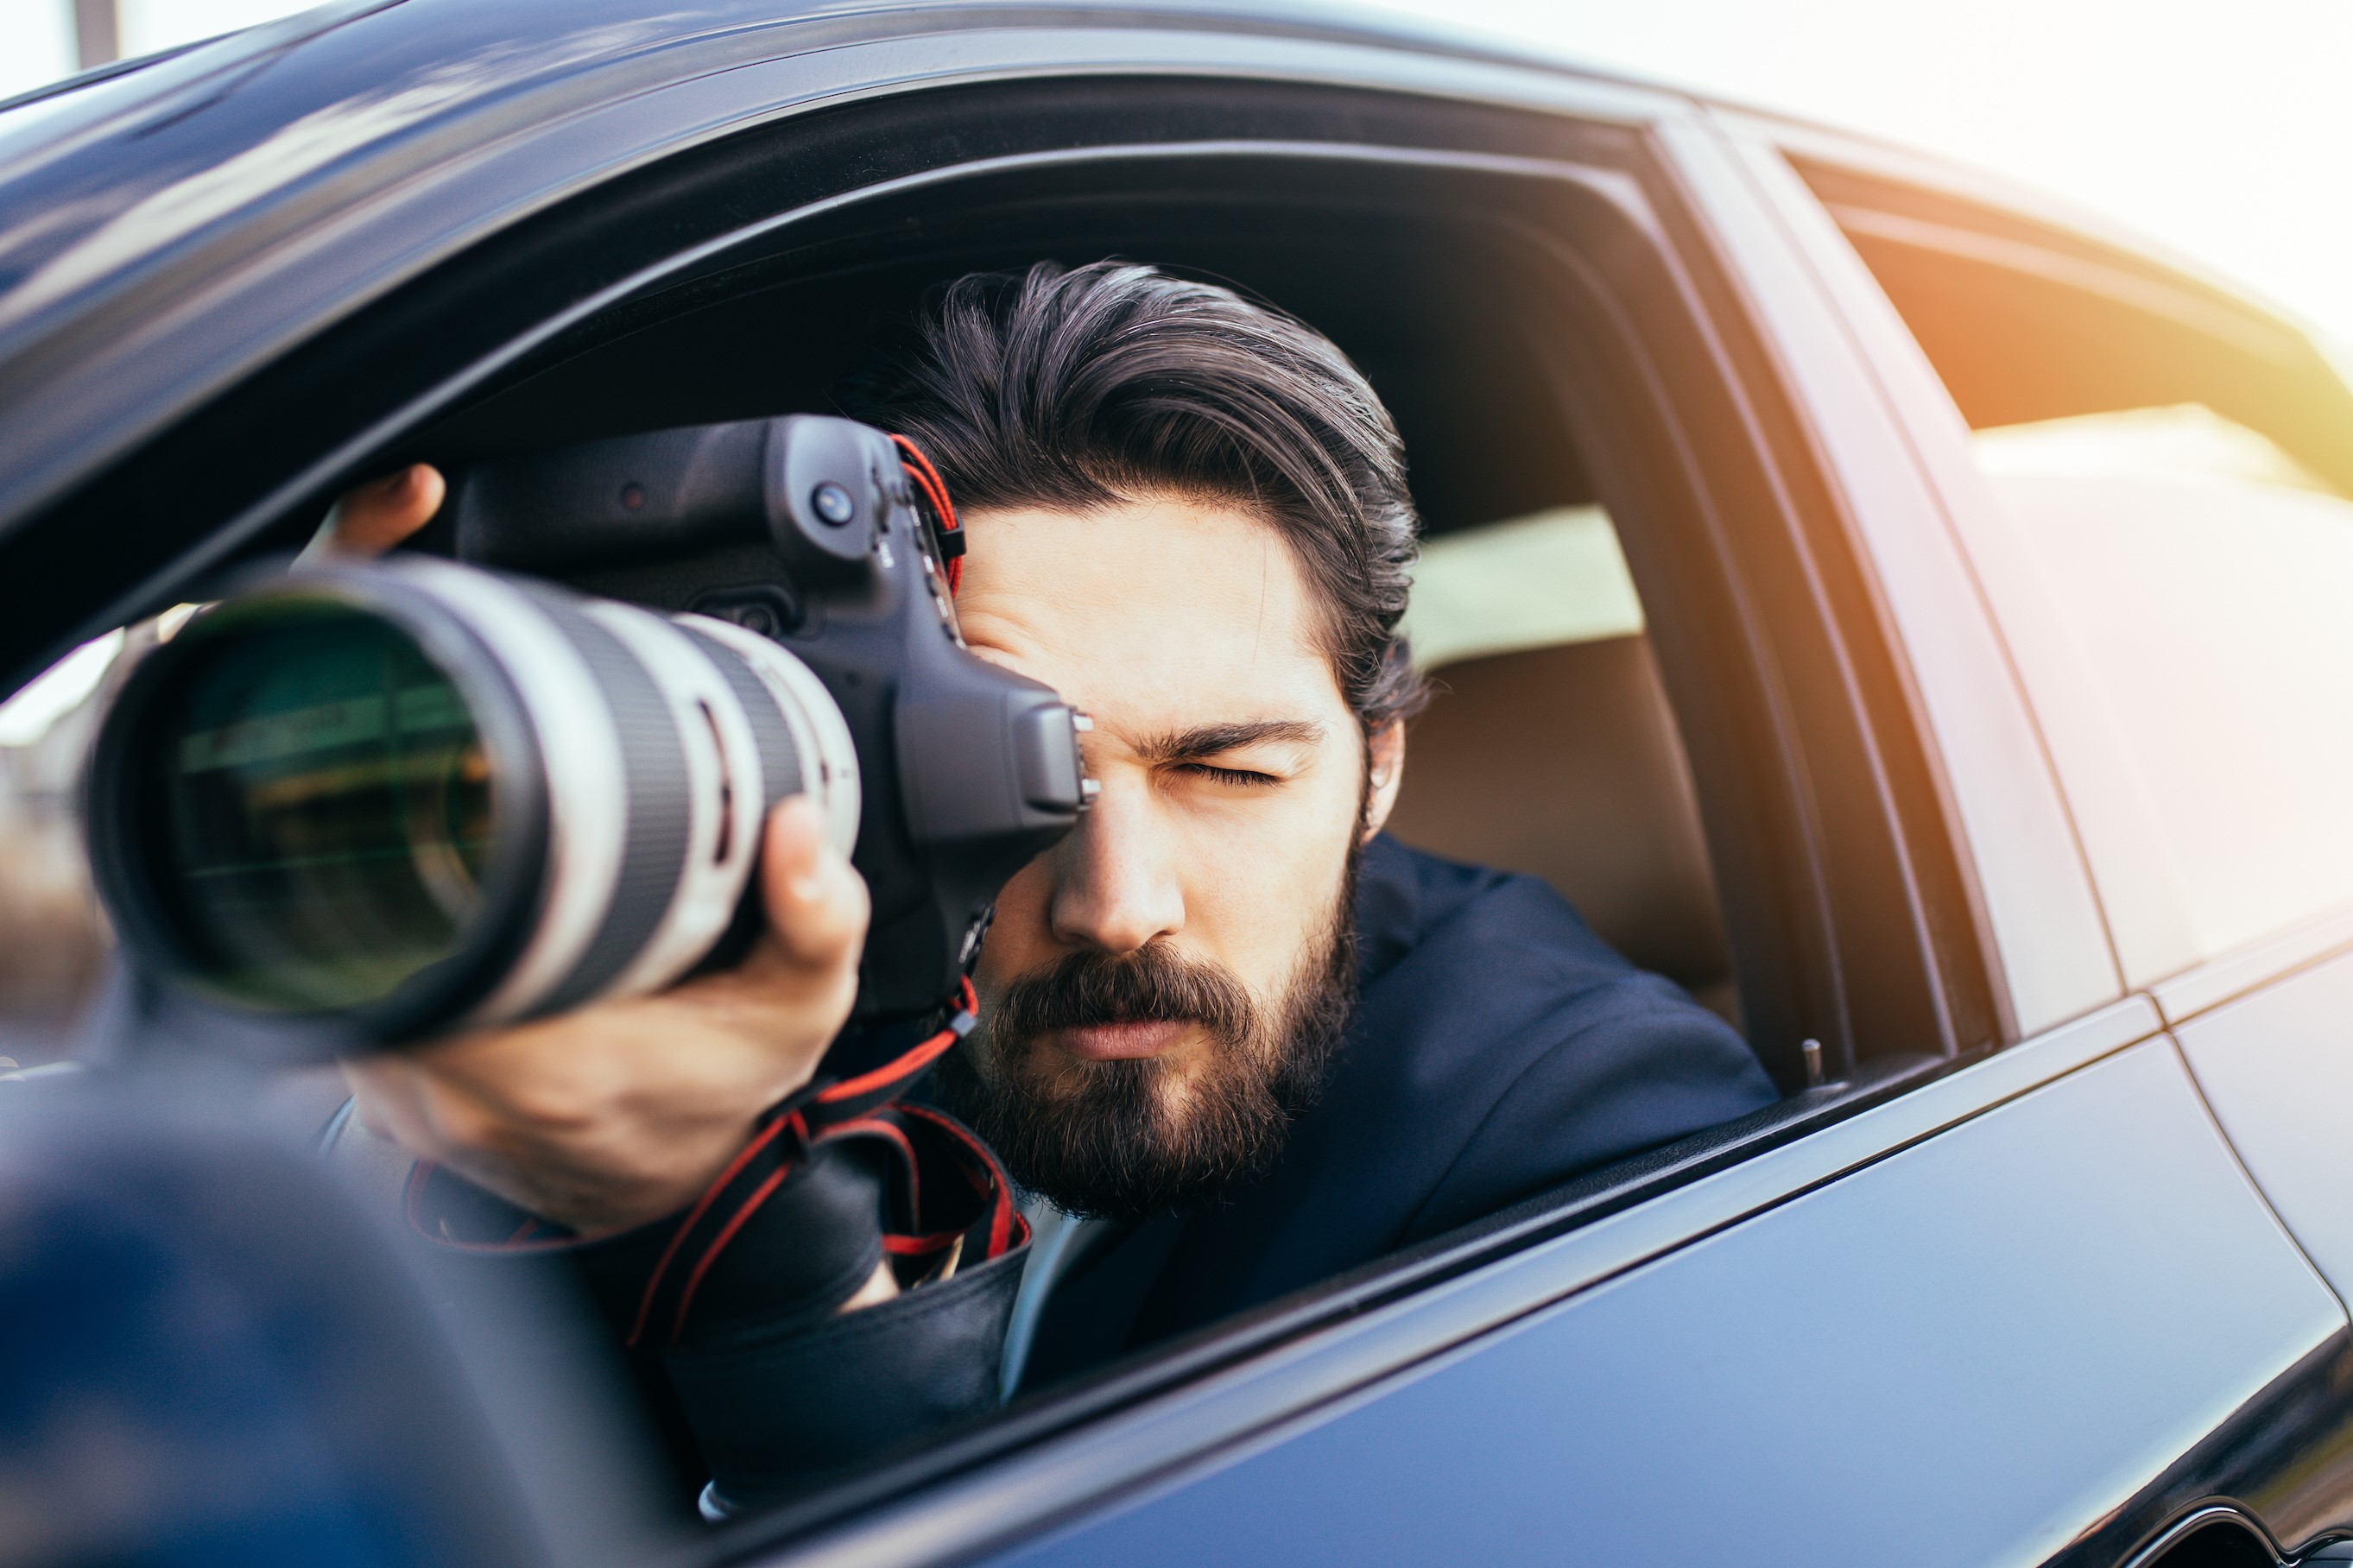 Private Investigator Capturing Photos from His Car